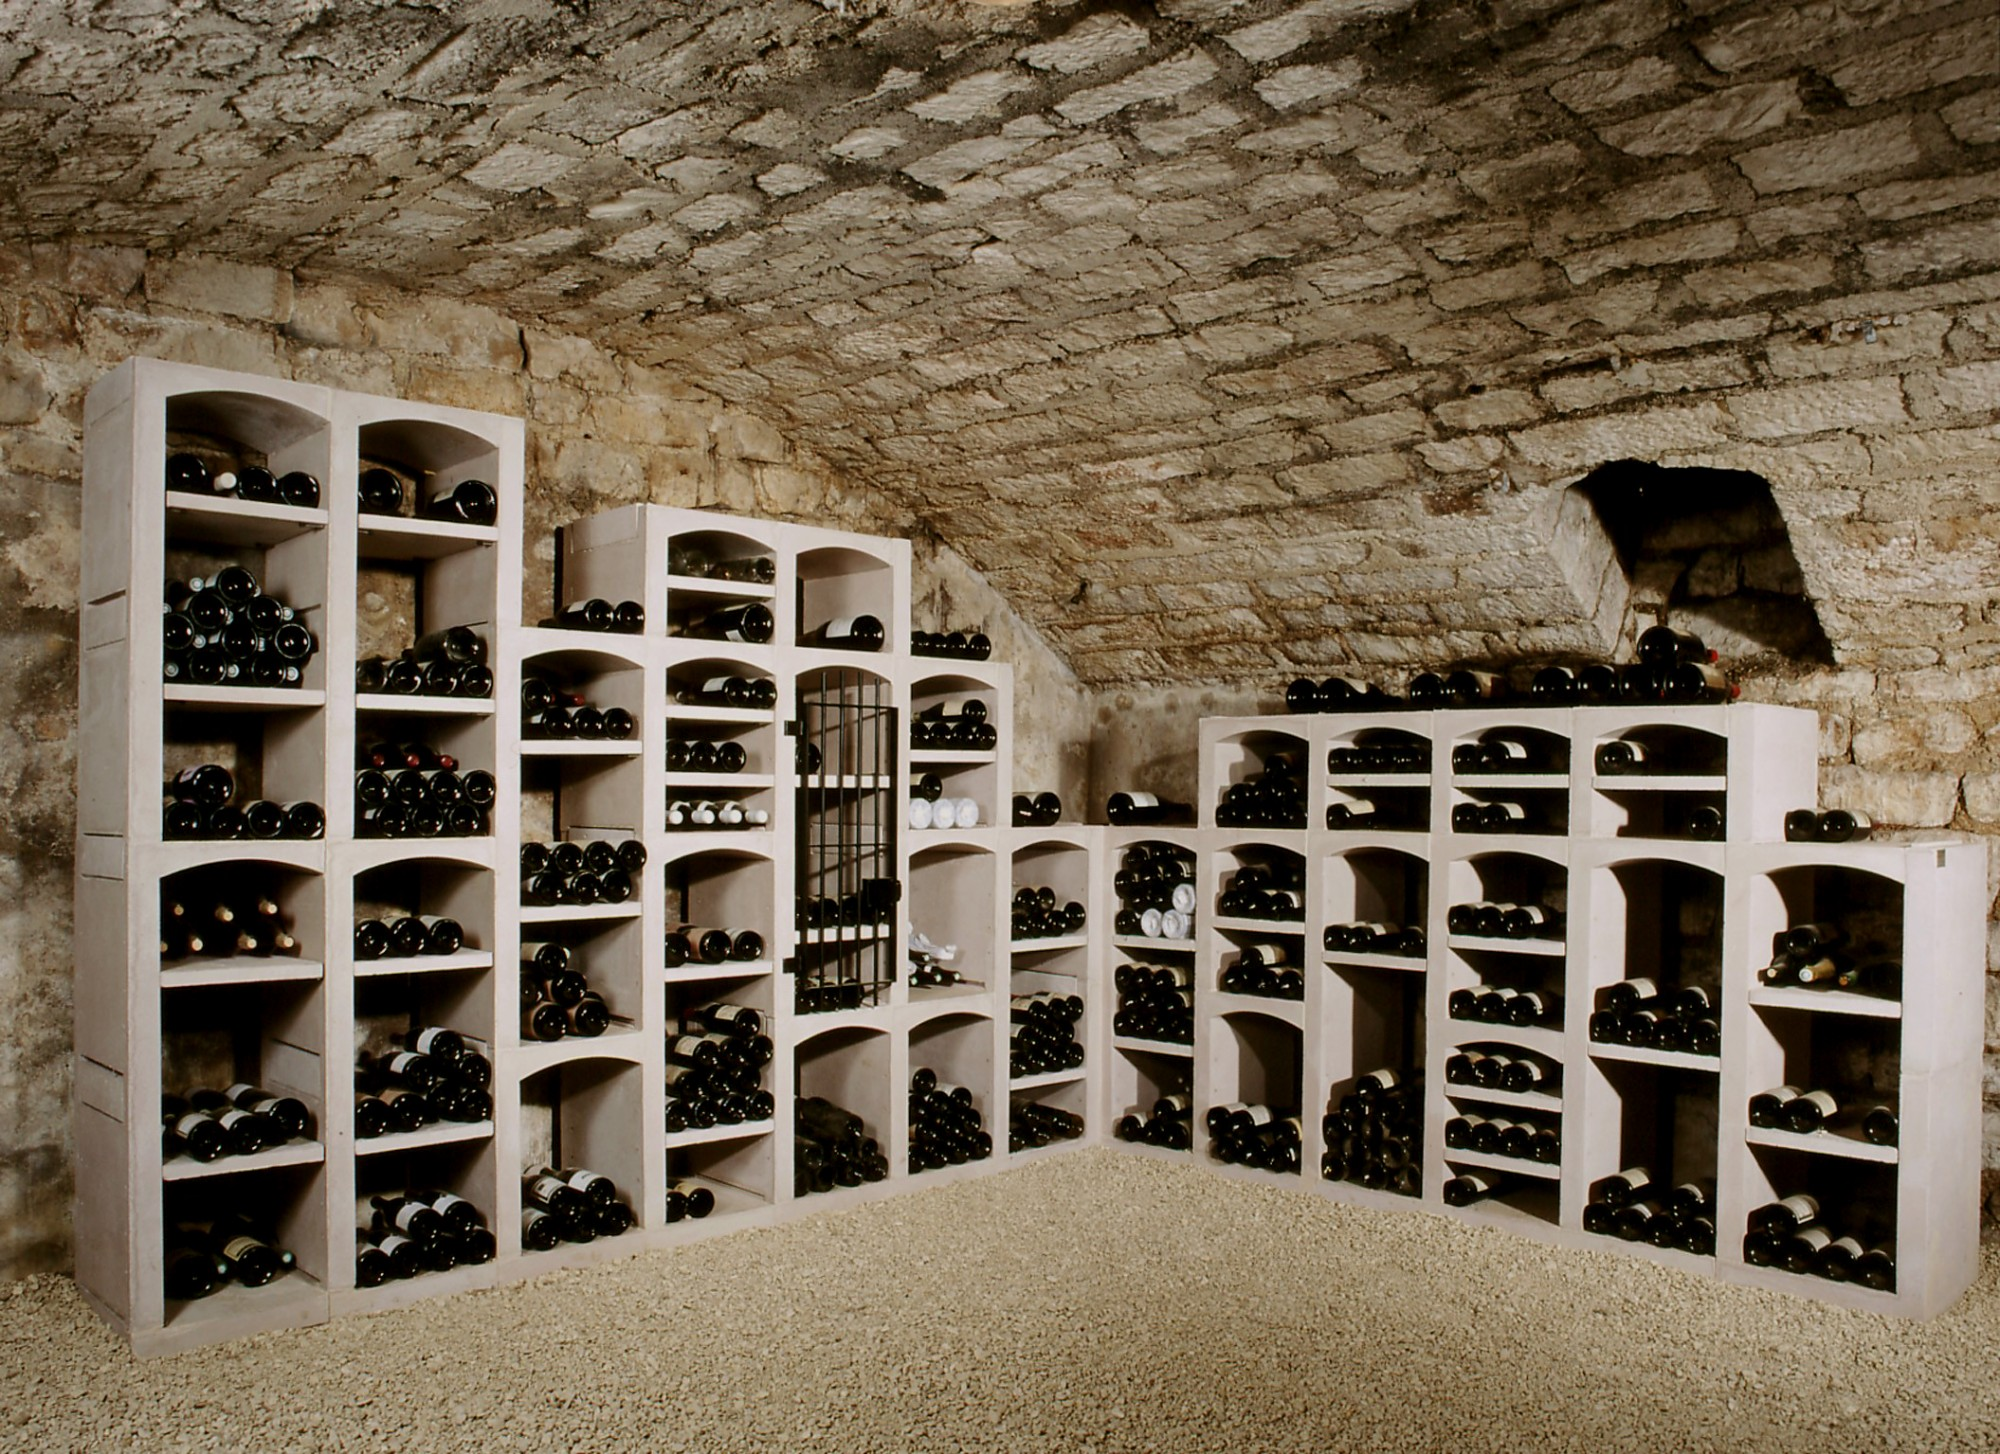 Casier cave a vin pierre